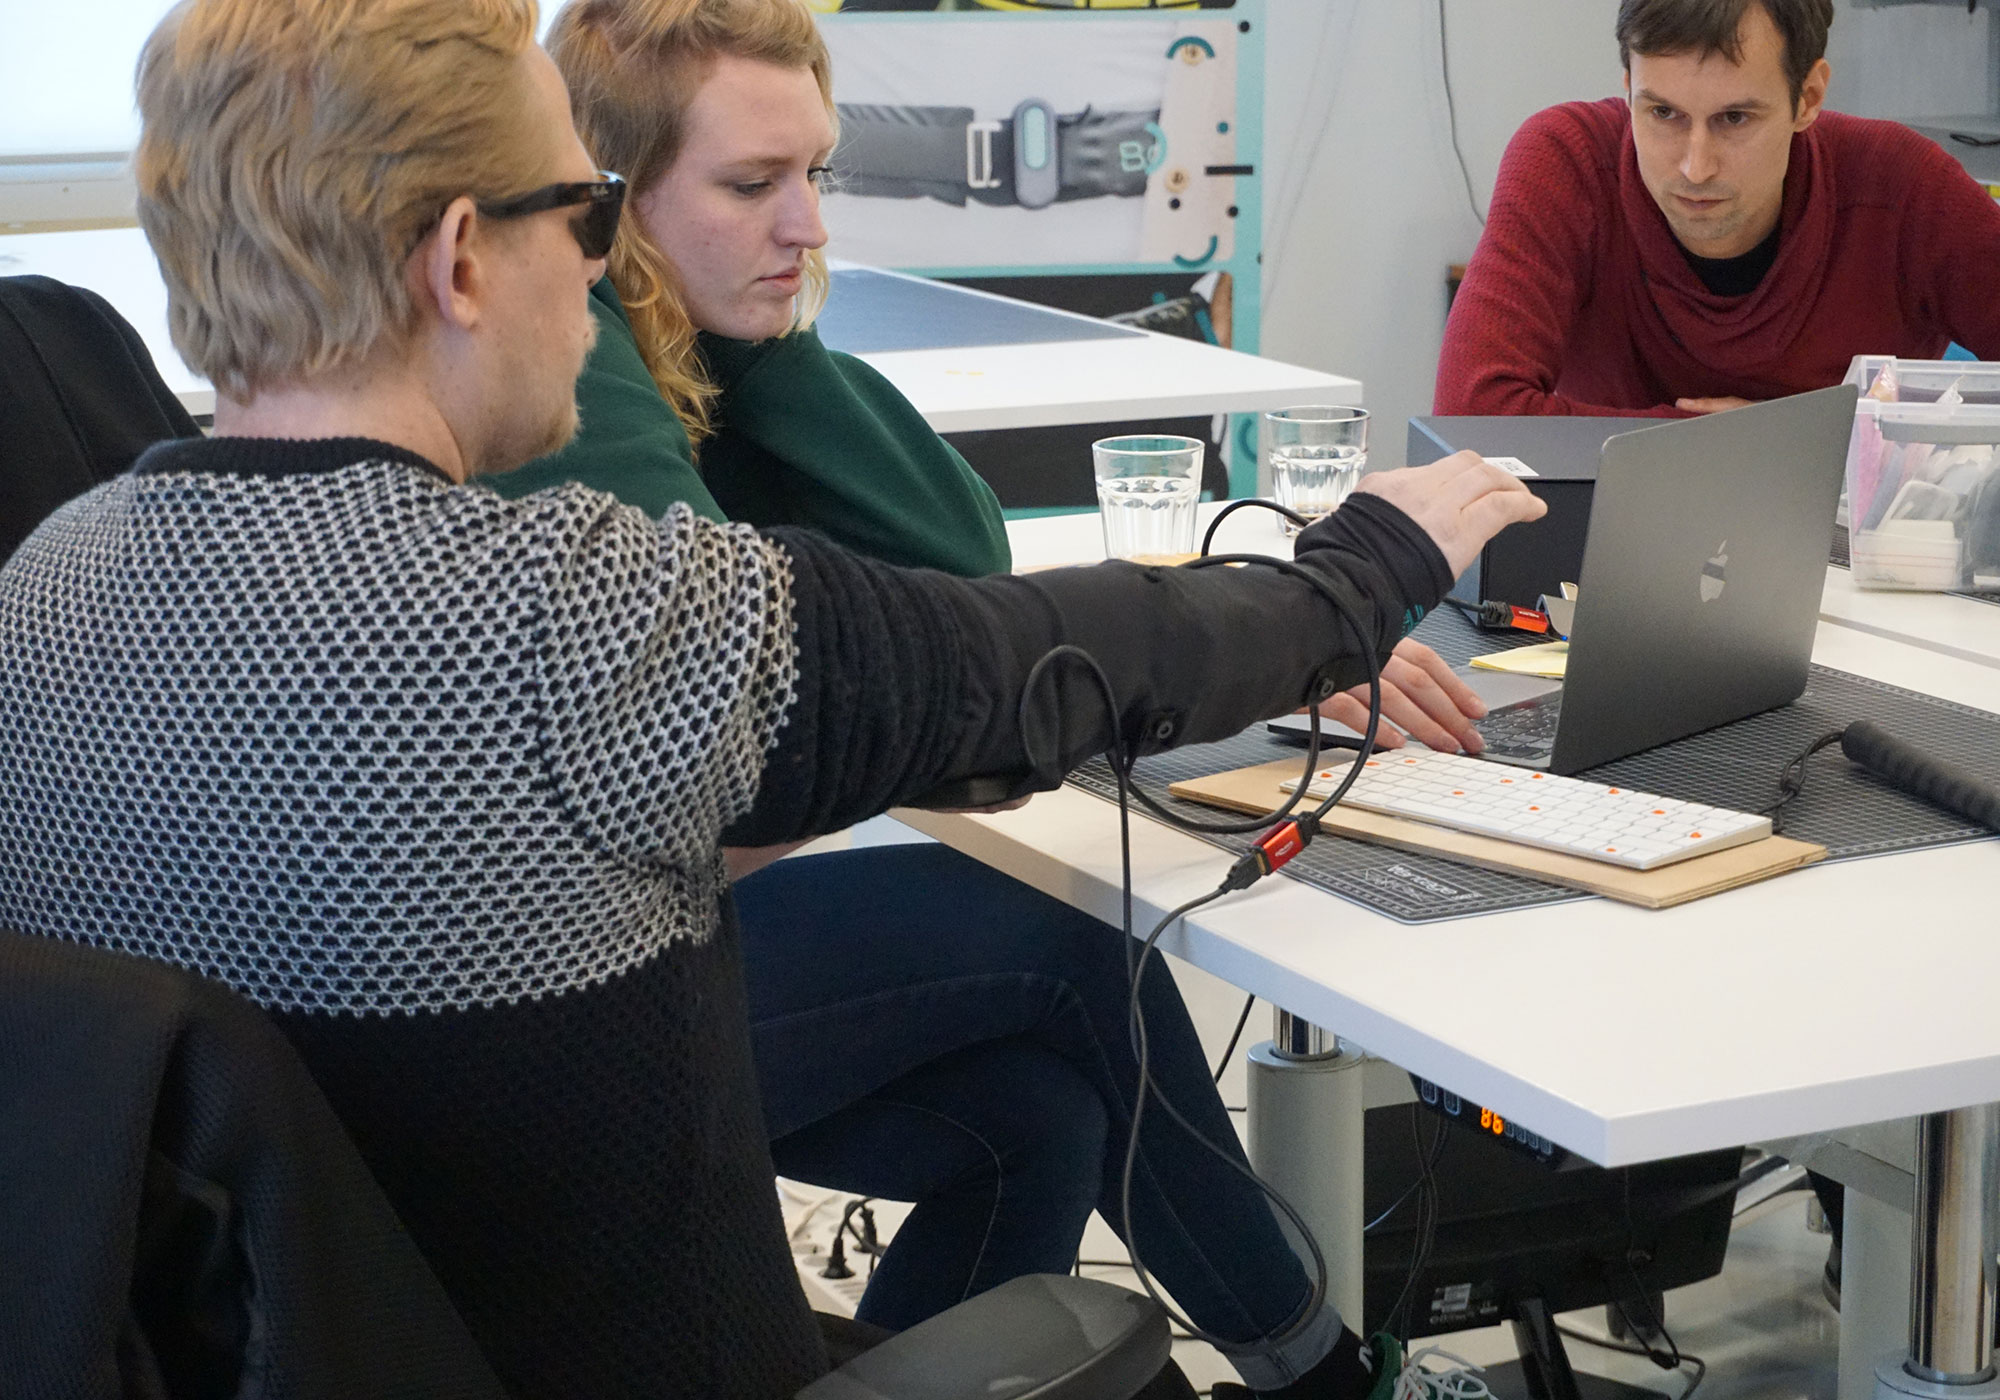 Young man testing a haptic feedback sleeve, with a woman and a man watching intently